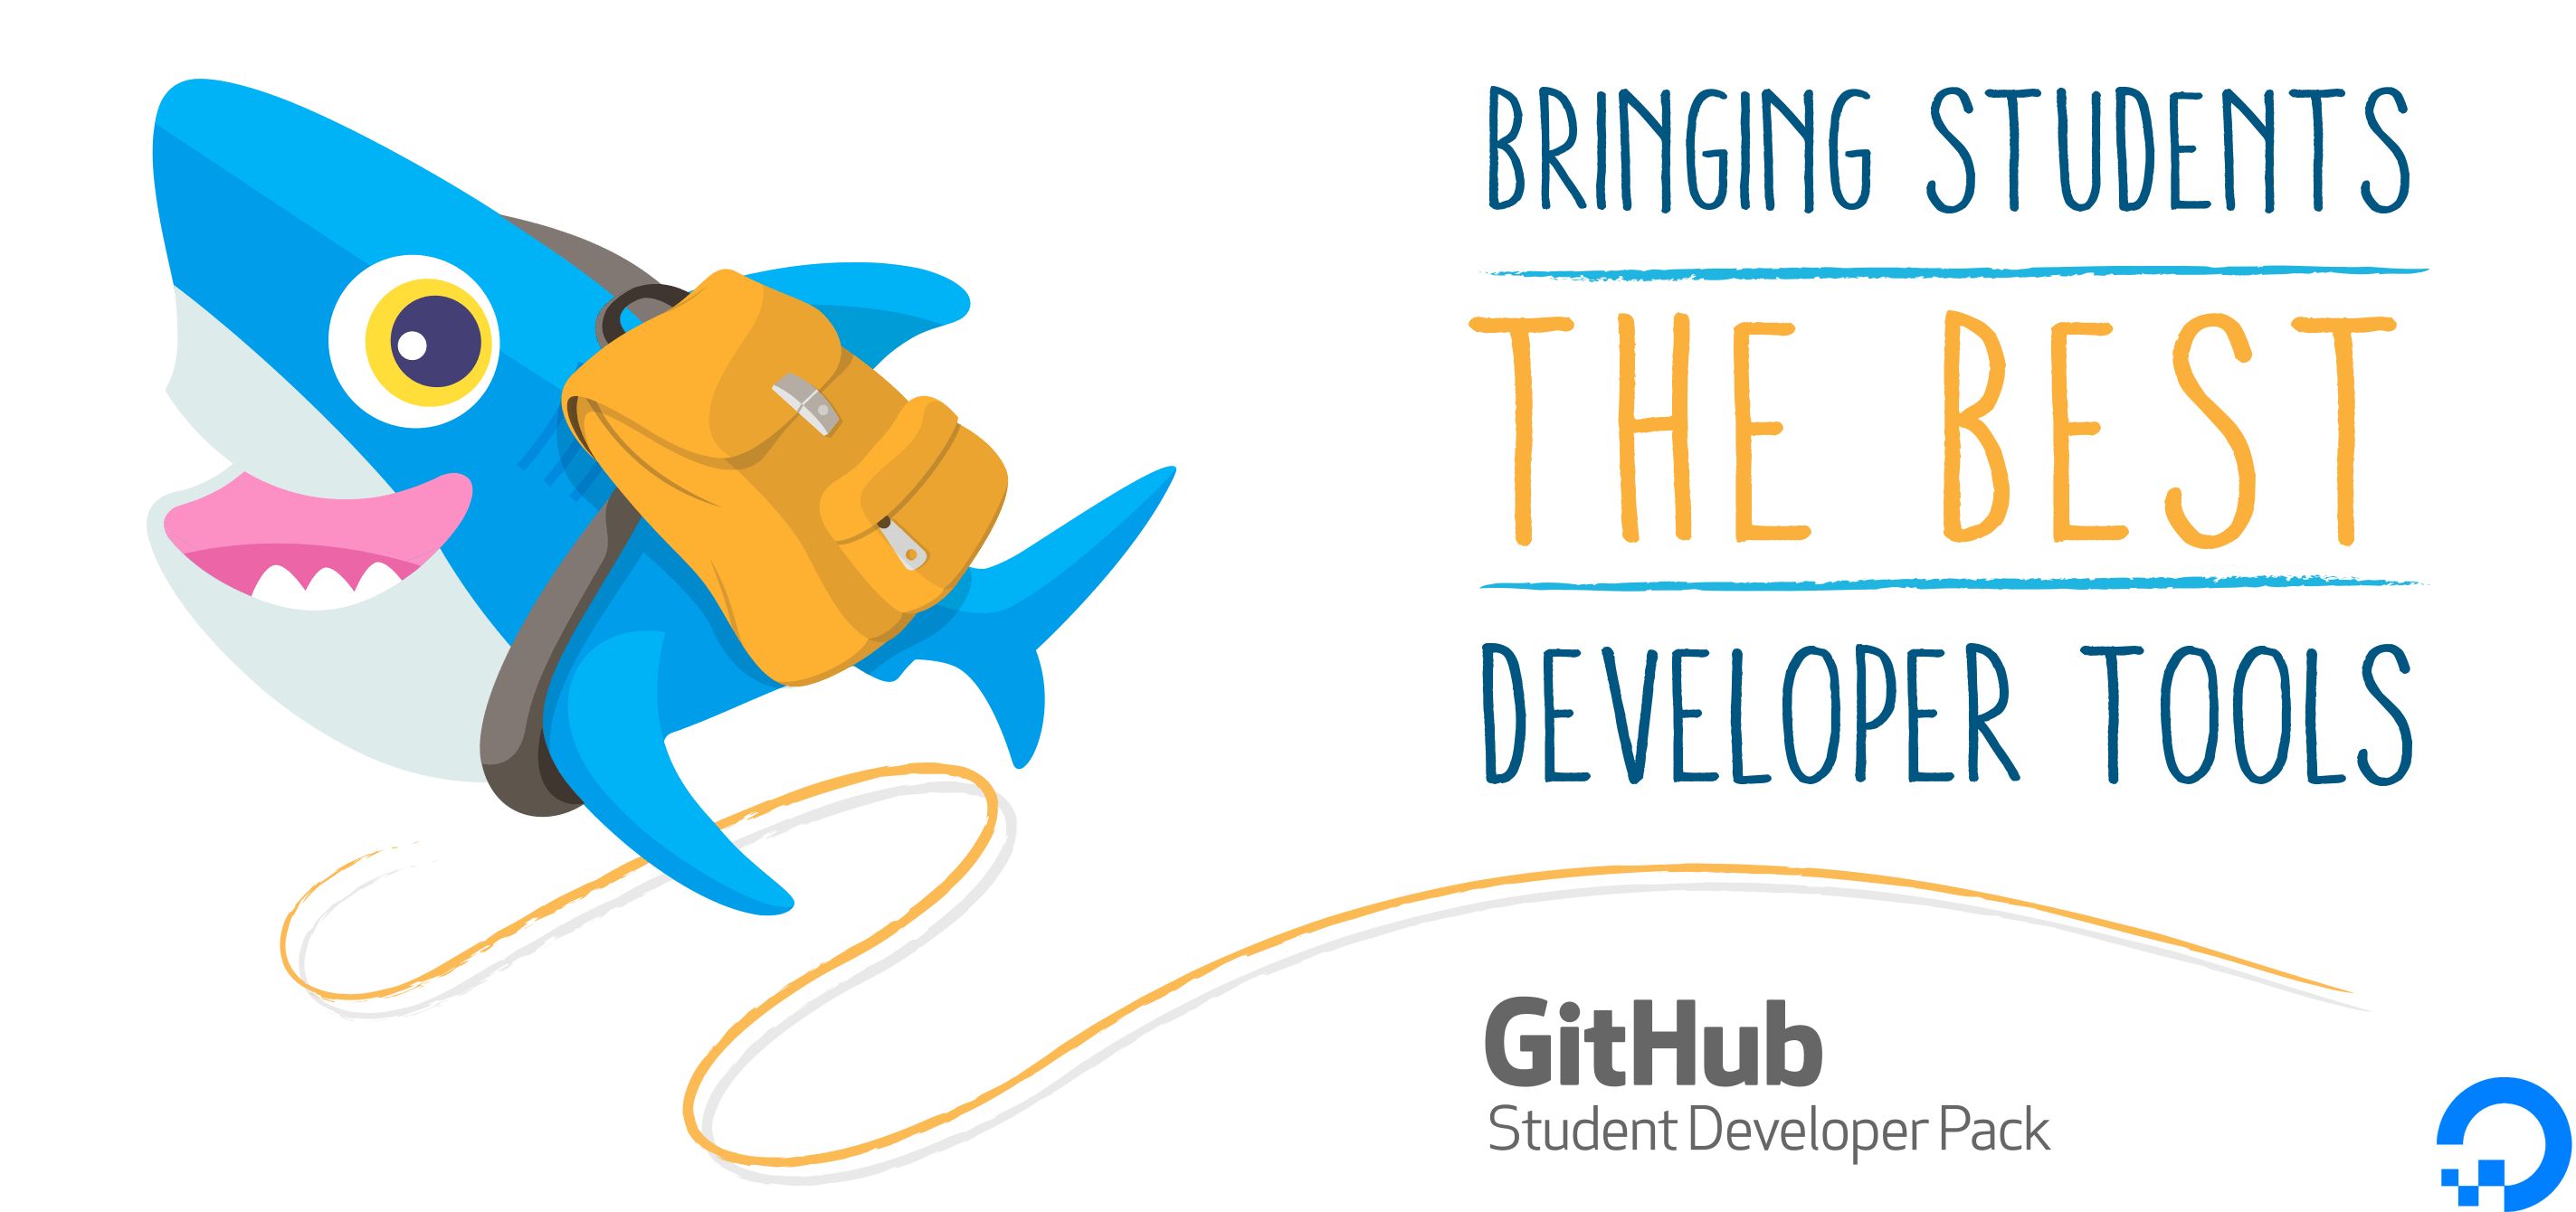 Bringing Students the Best Developer Tools with GitHub and DigitalOcean